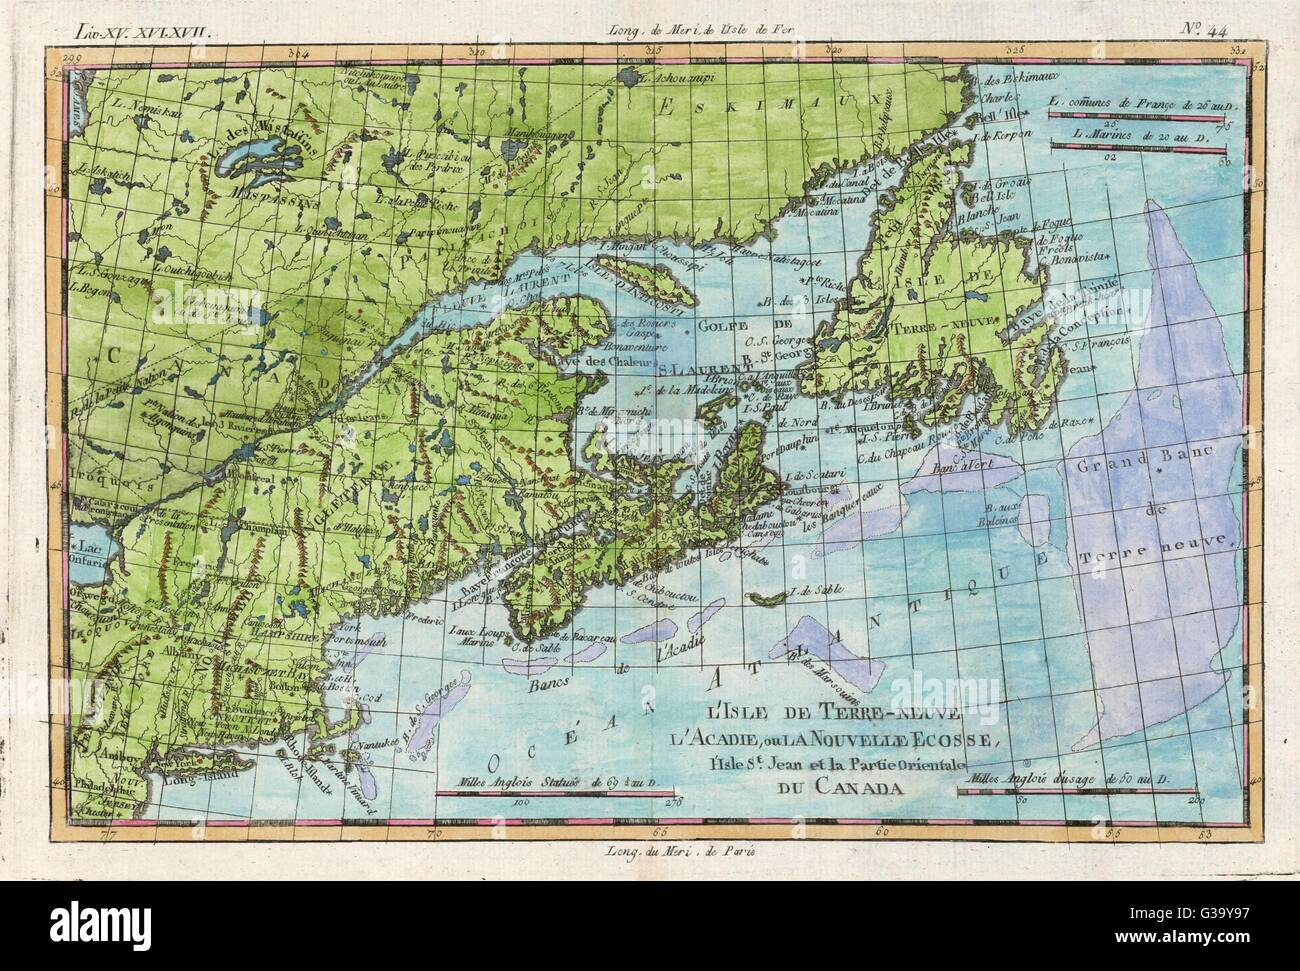 The east coast of North America from New York to Newfoundland